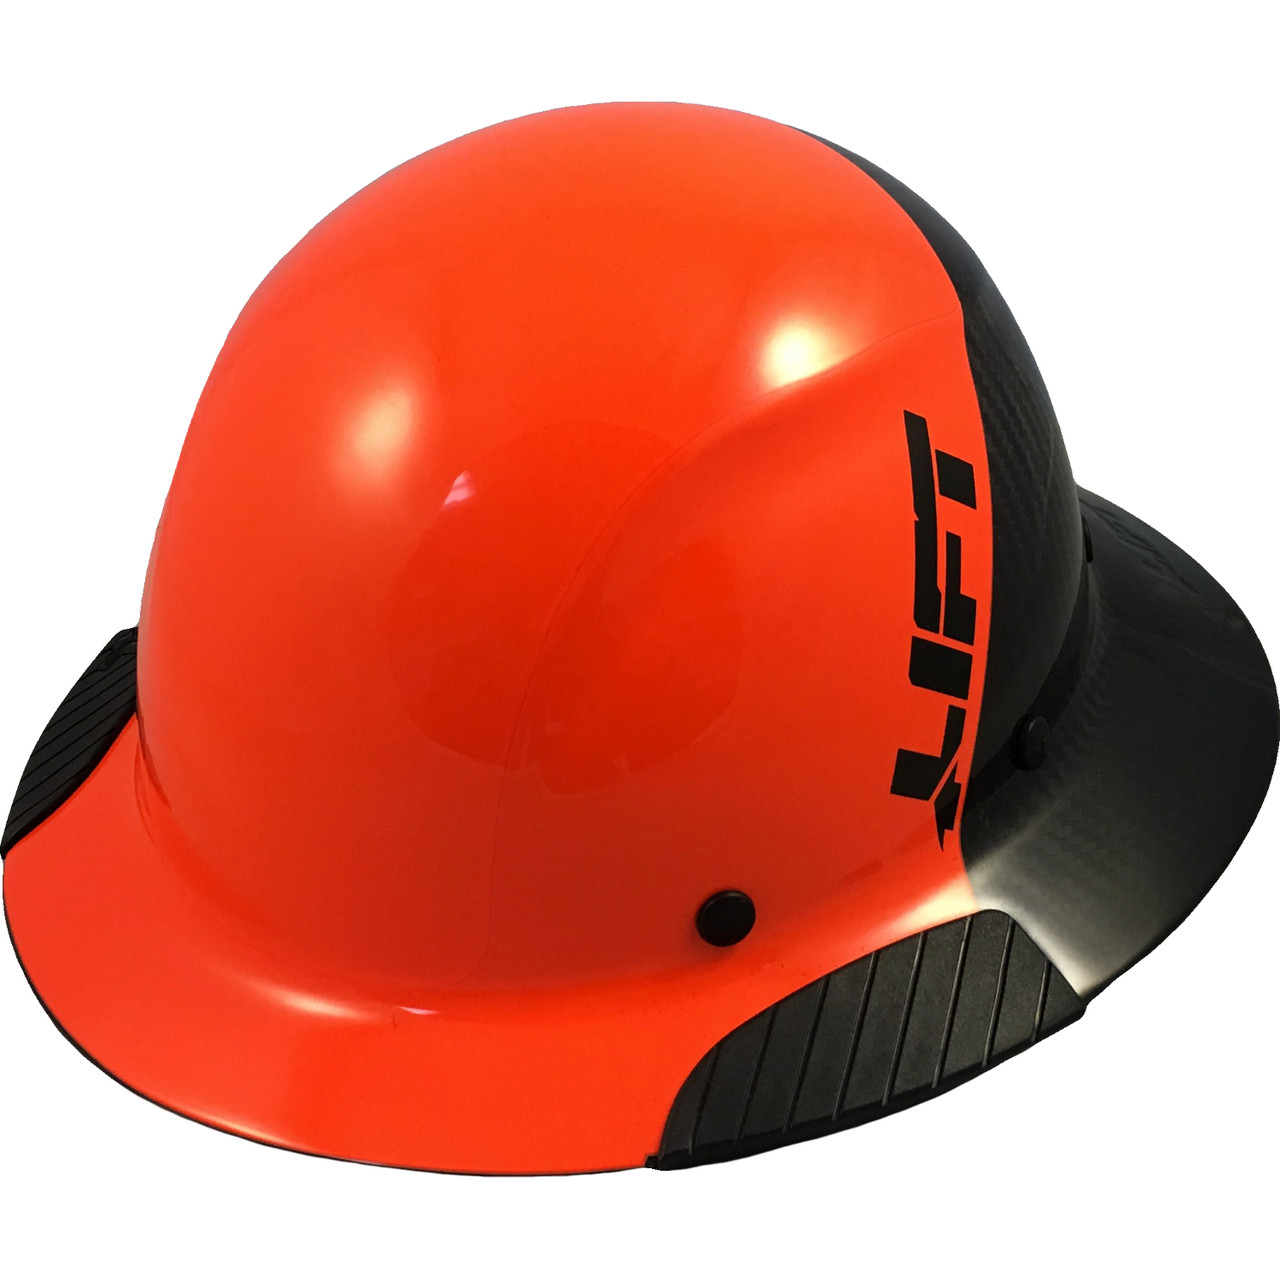 d4664003 DAX Actual Carbon Fiber Shell Full Brim Hard Hat - Glossy Black and High  Vision Orange